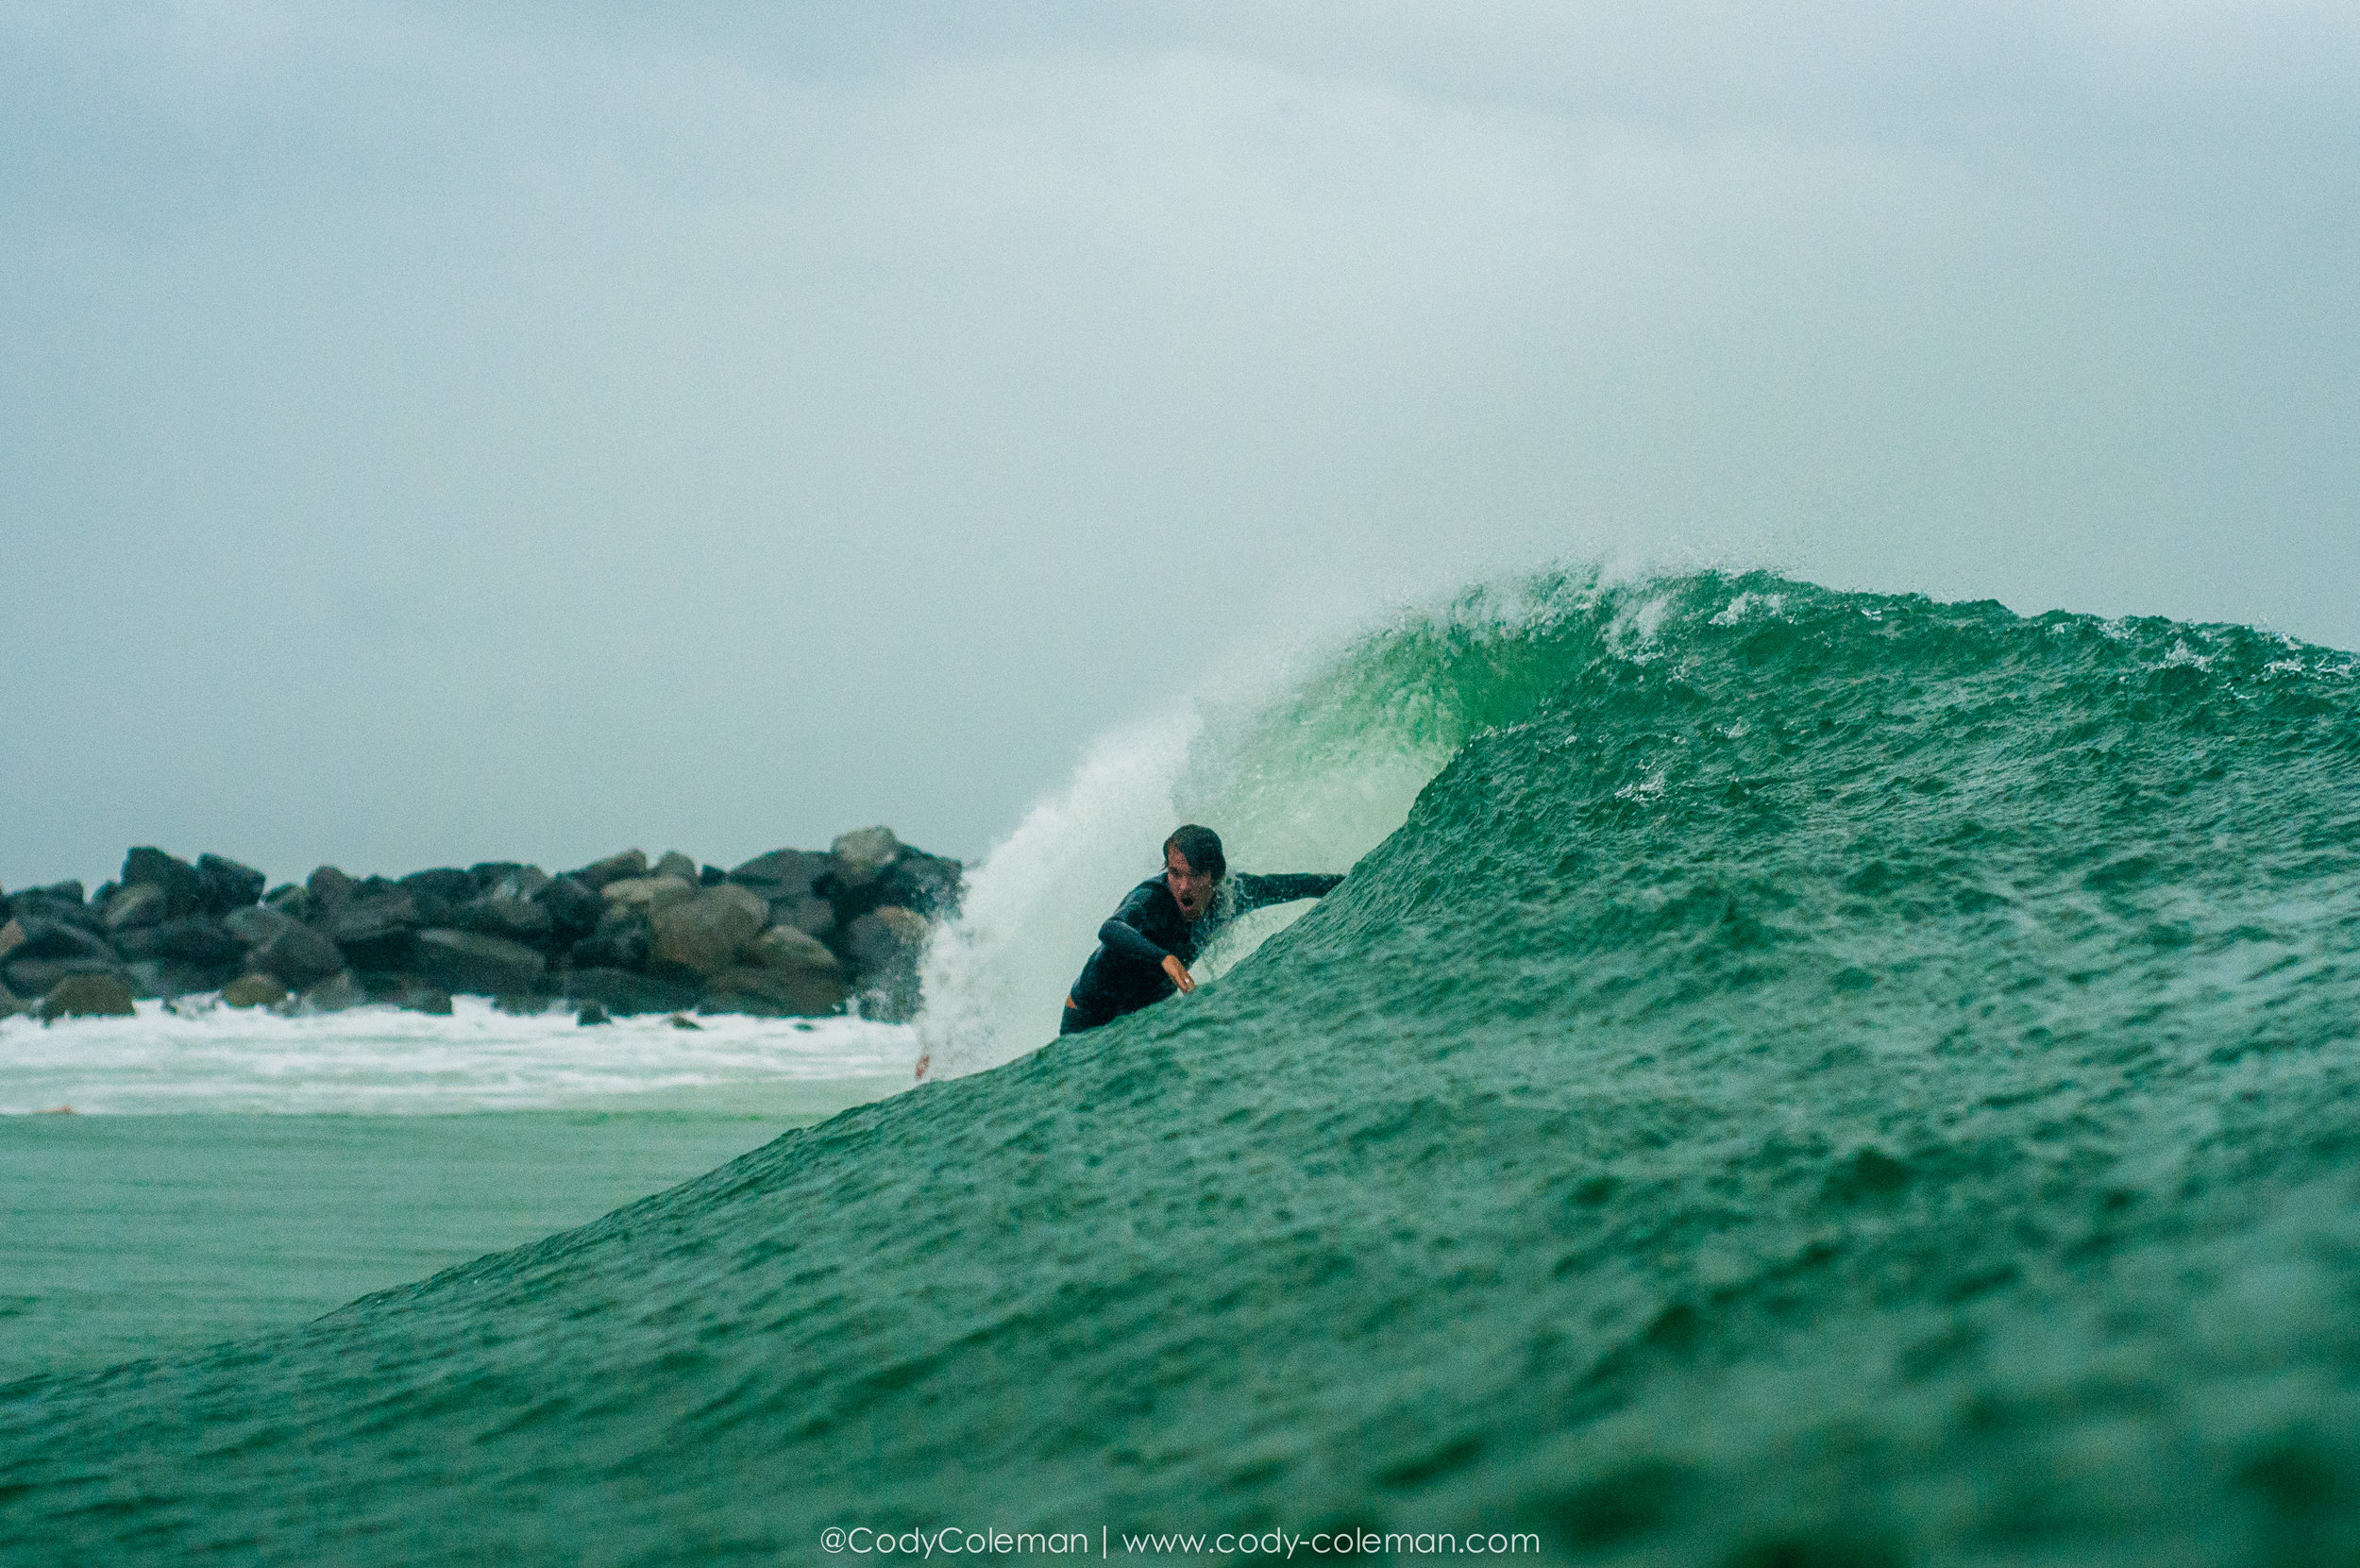 Alec's first wave of the session.